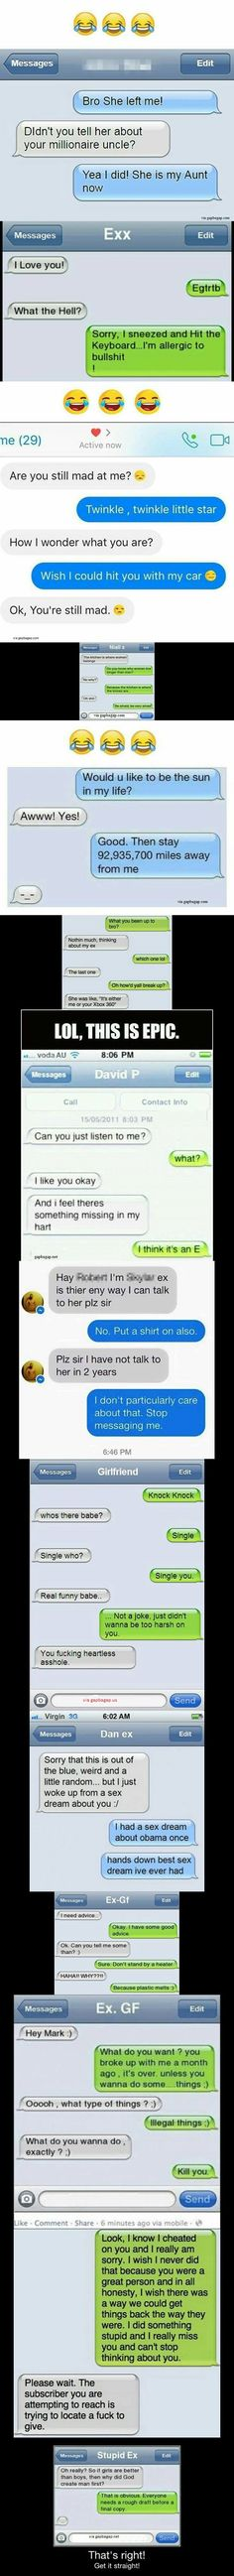 Top 15 #Funny Text Messages By Exes